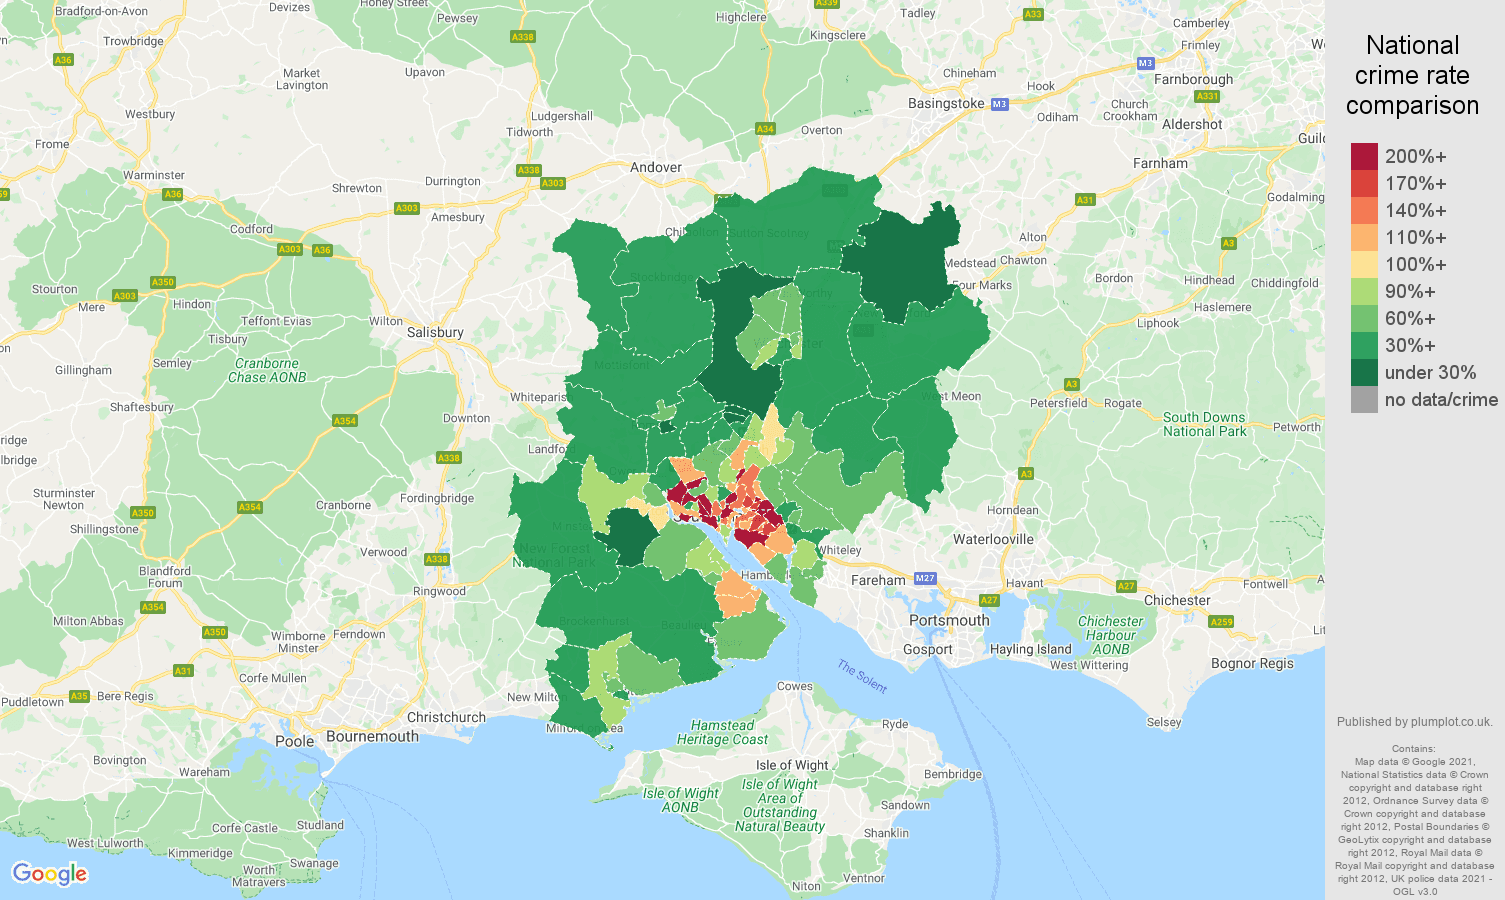 Southampton violent crime rate comparison map